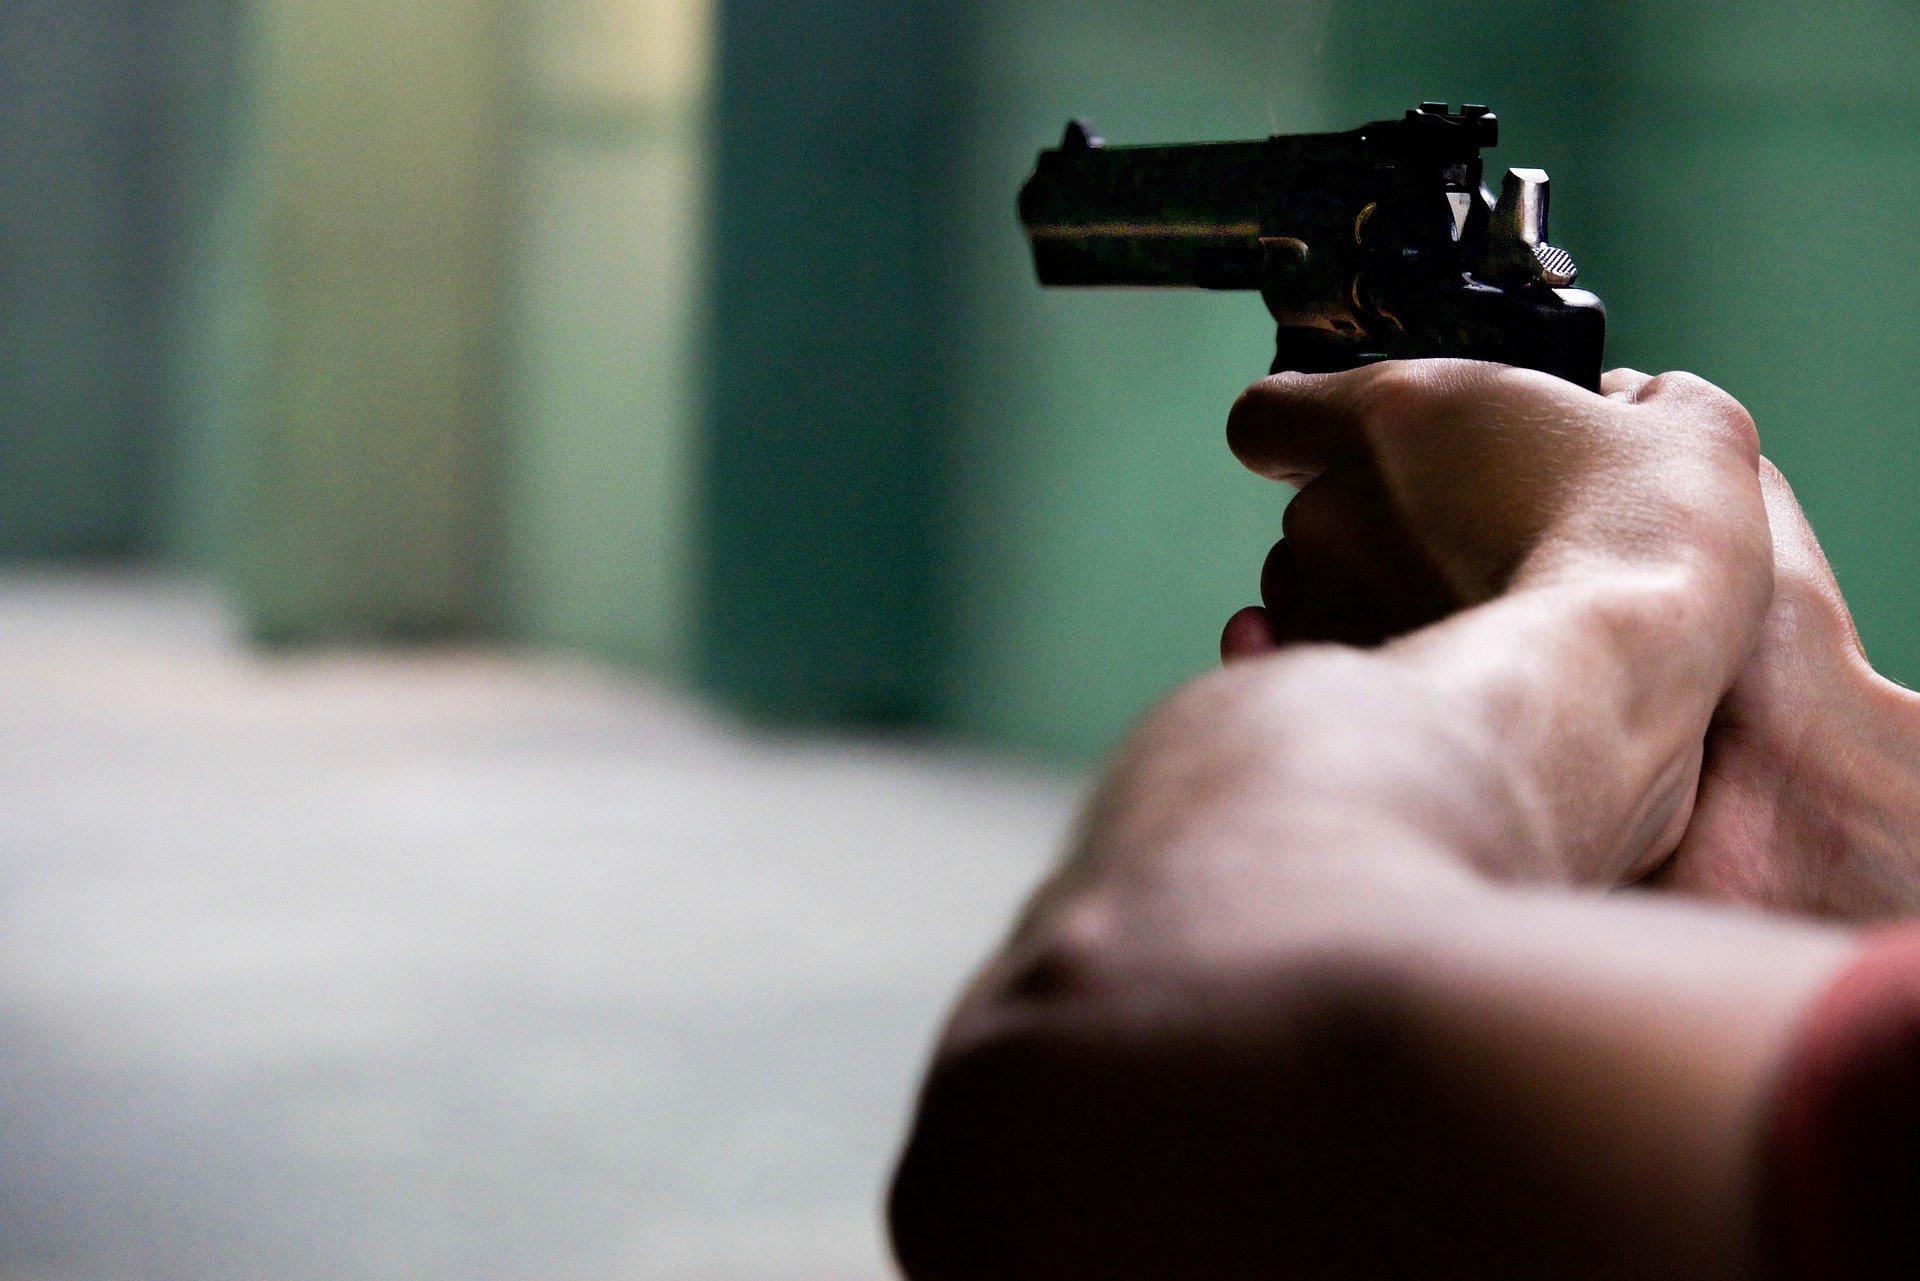 Pictured - A man pointing a gun   Source: Pixabay